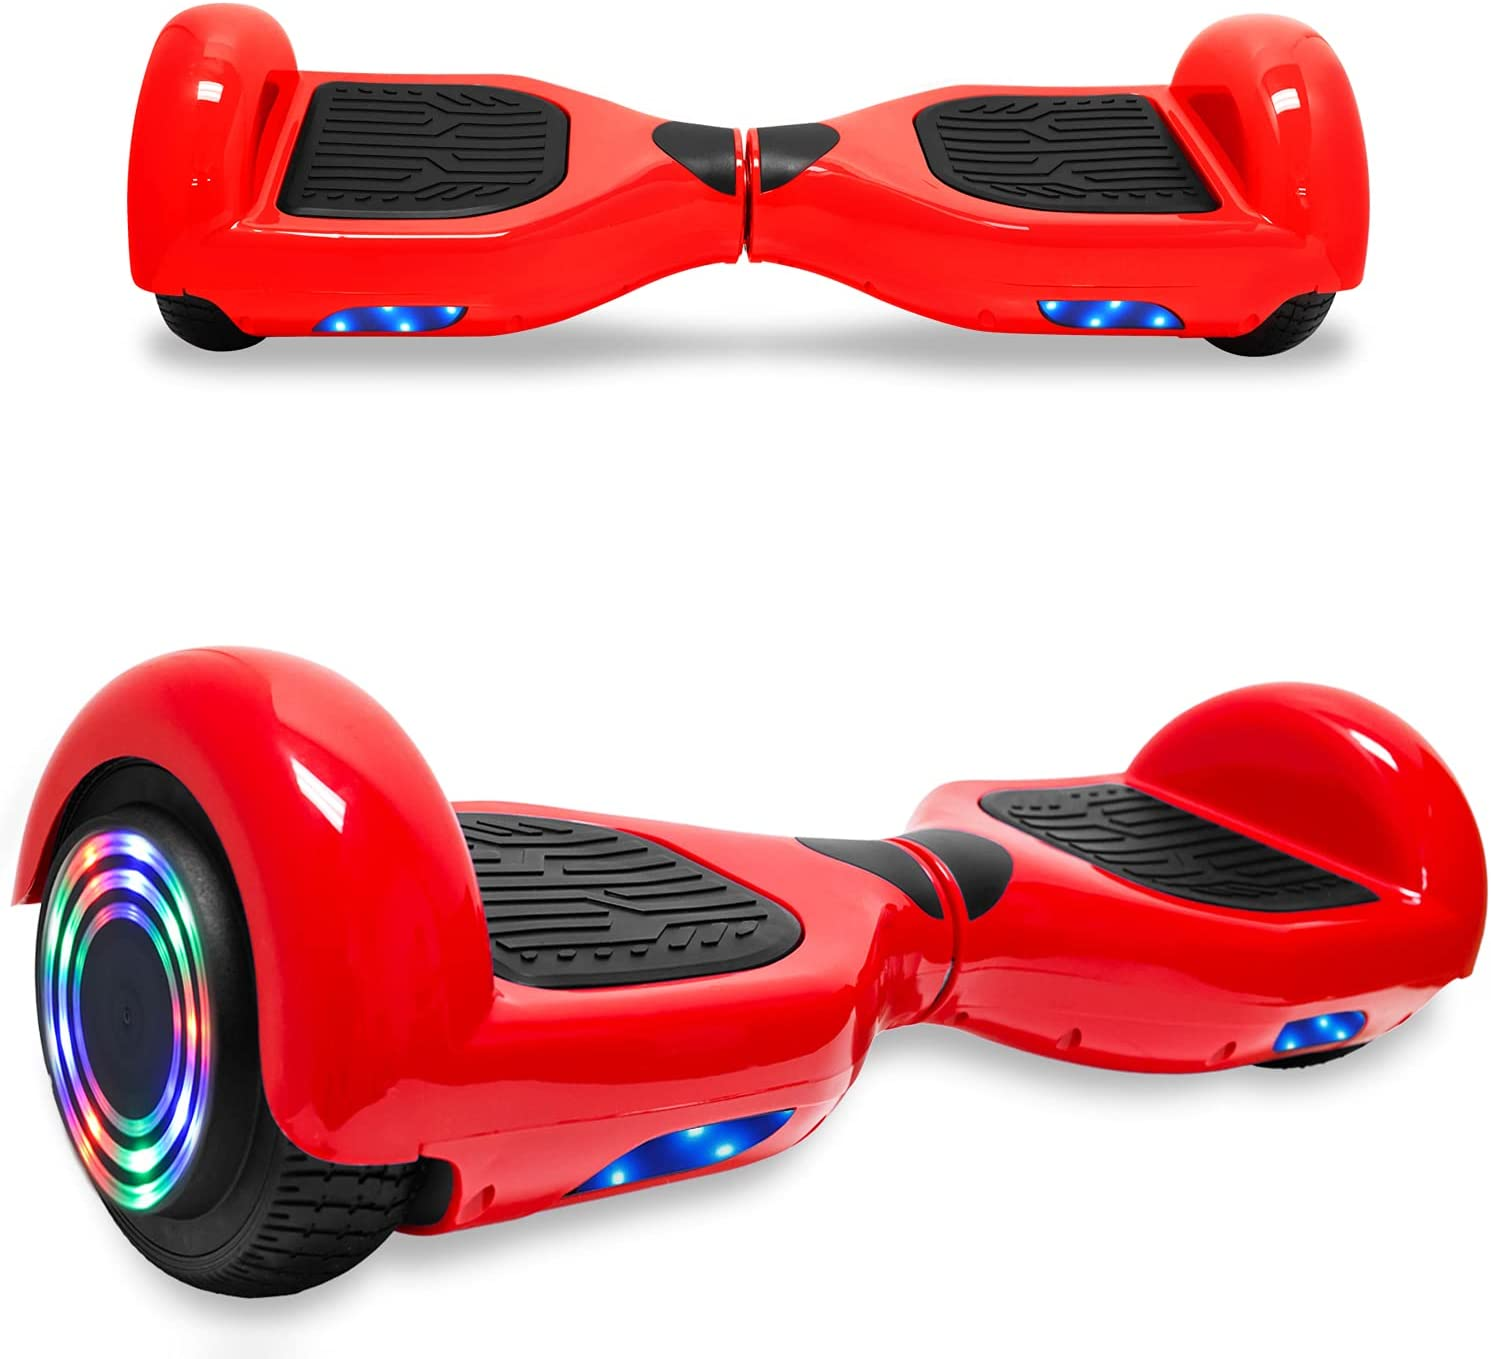 TPS Rapid rise Power Sports Electric Hoverboard Scooter Fort Worth Mall for Balancing Self